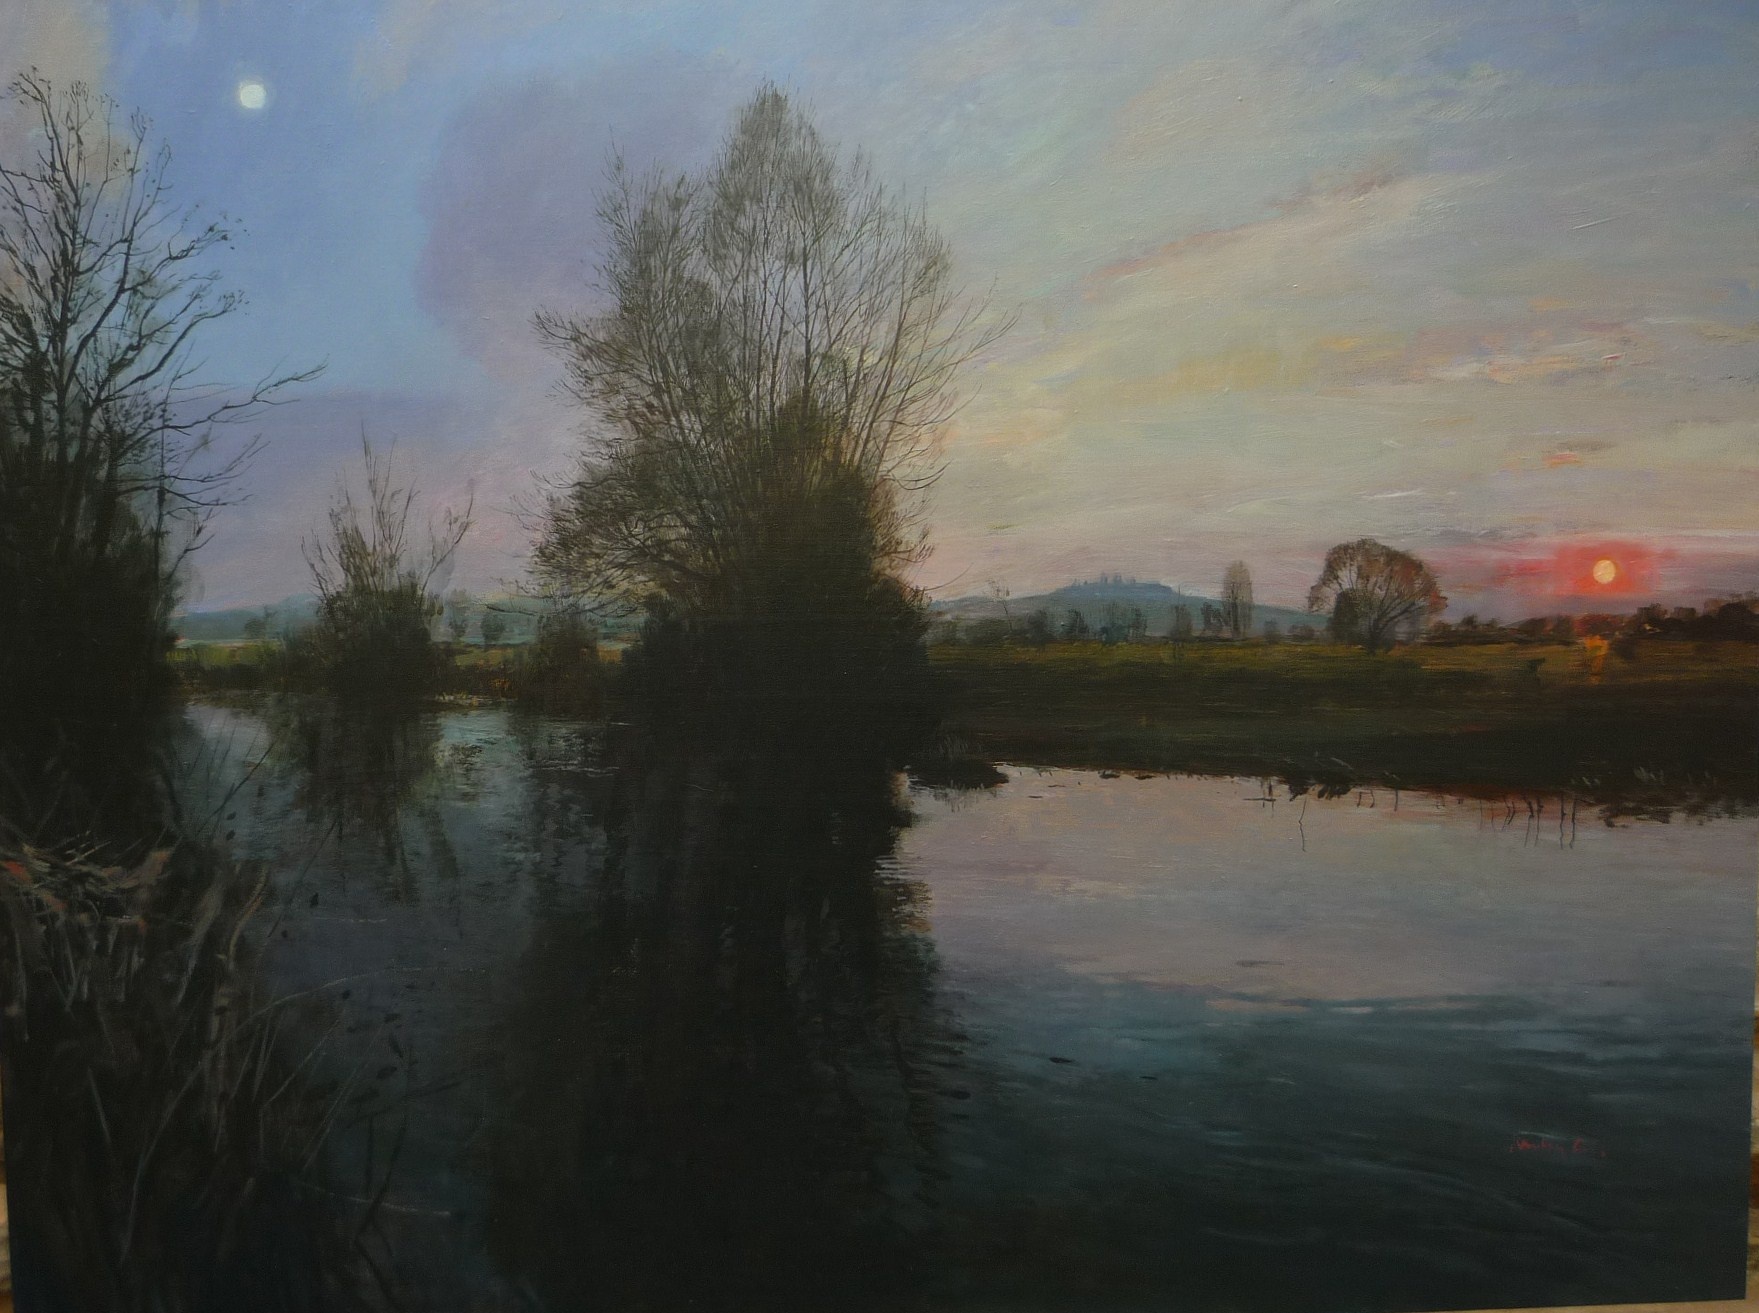 Landscape of the Vernal Equinox. Wittenham From the River Thame 2011